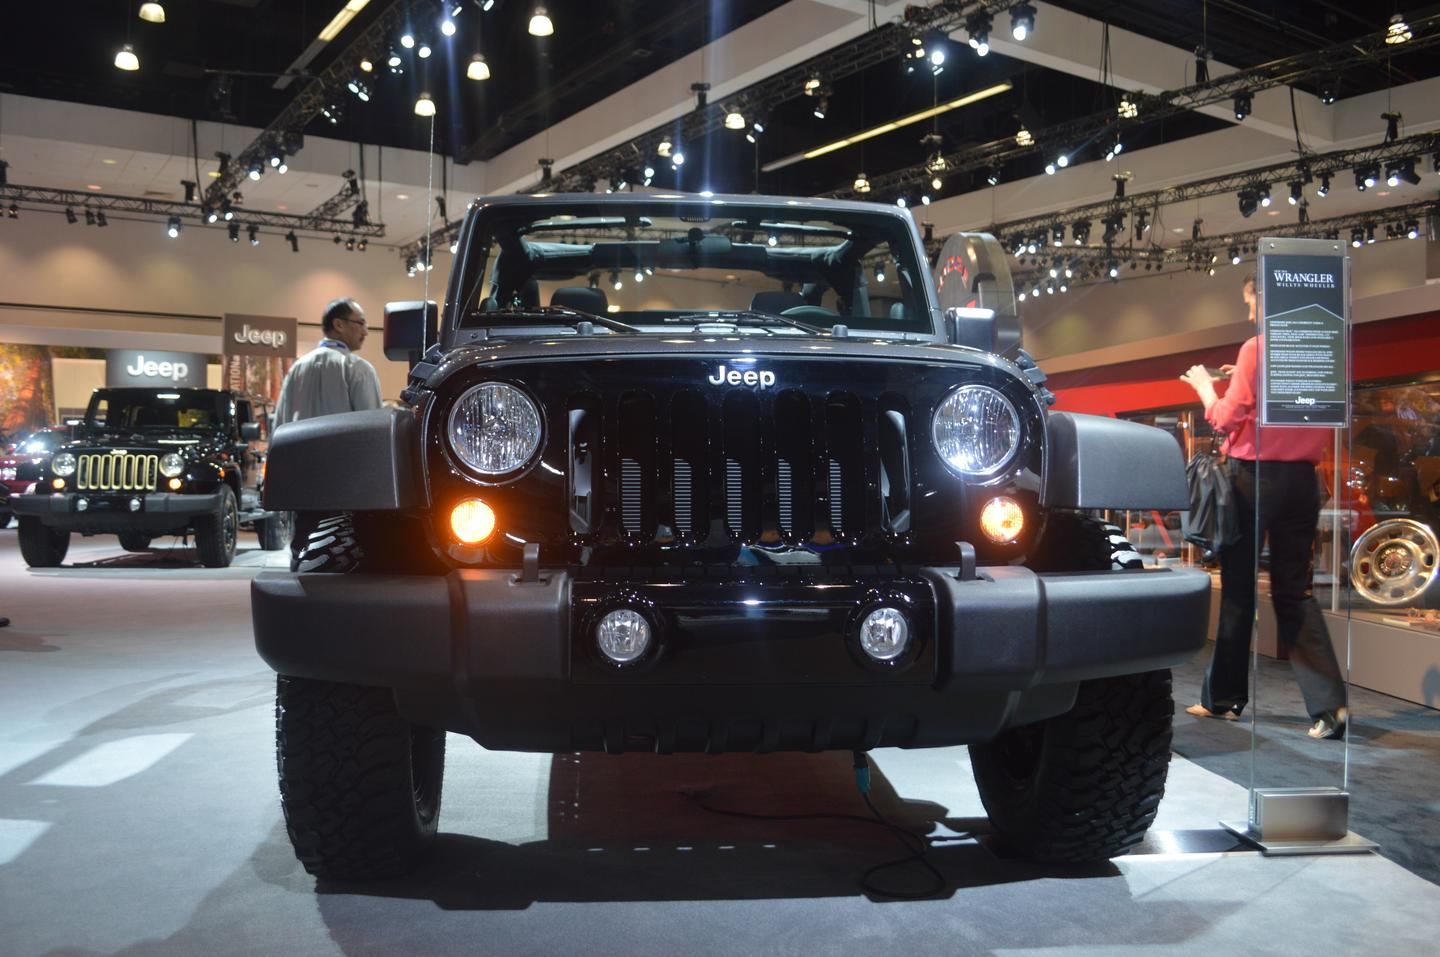 The Wrangler Willys includes a gloss black front grille